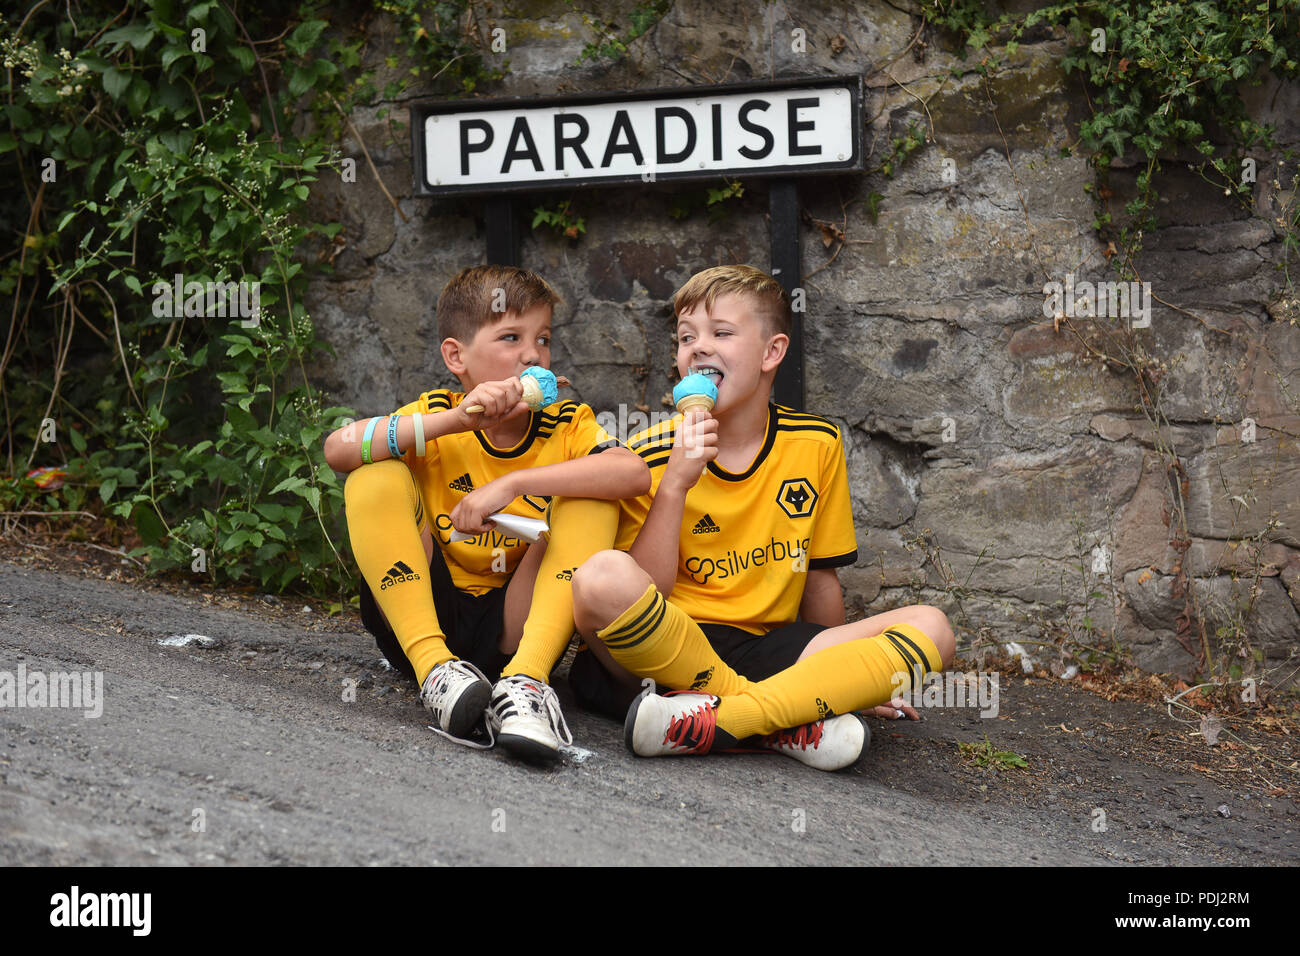 Young boys enjoying an ice cream in Paradise - Stock Image